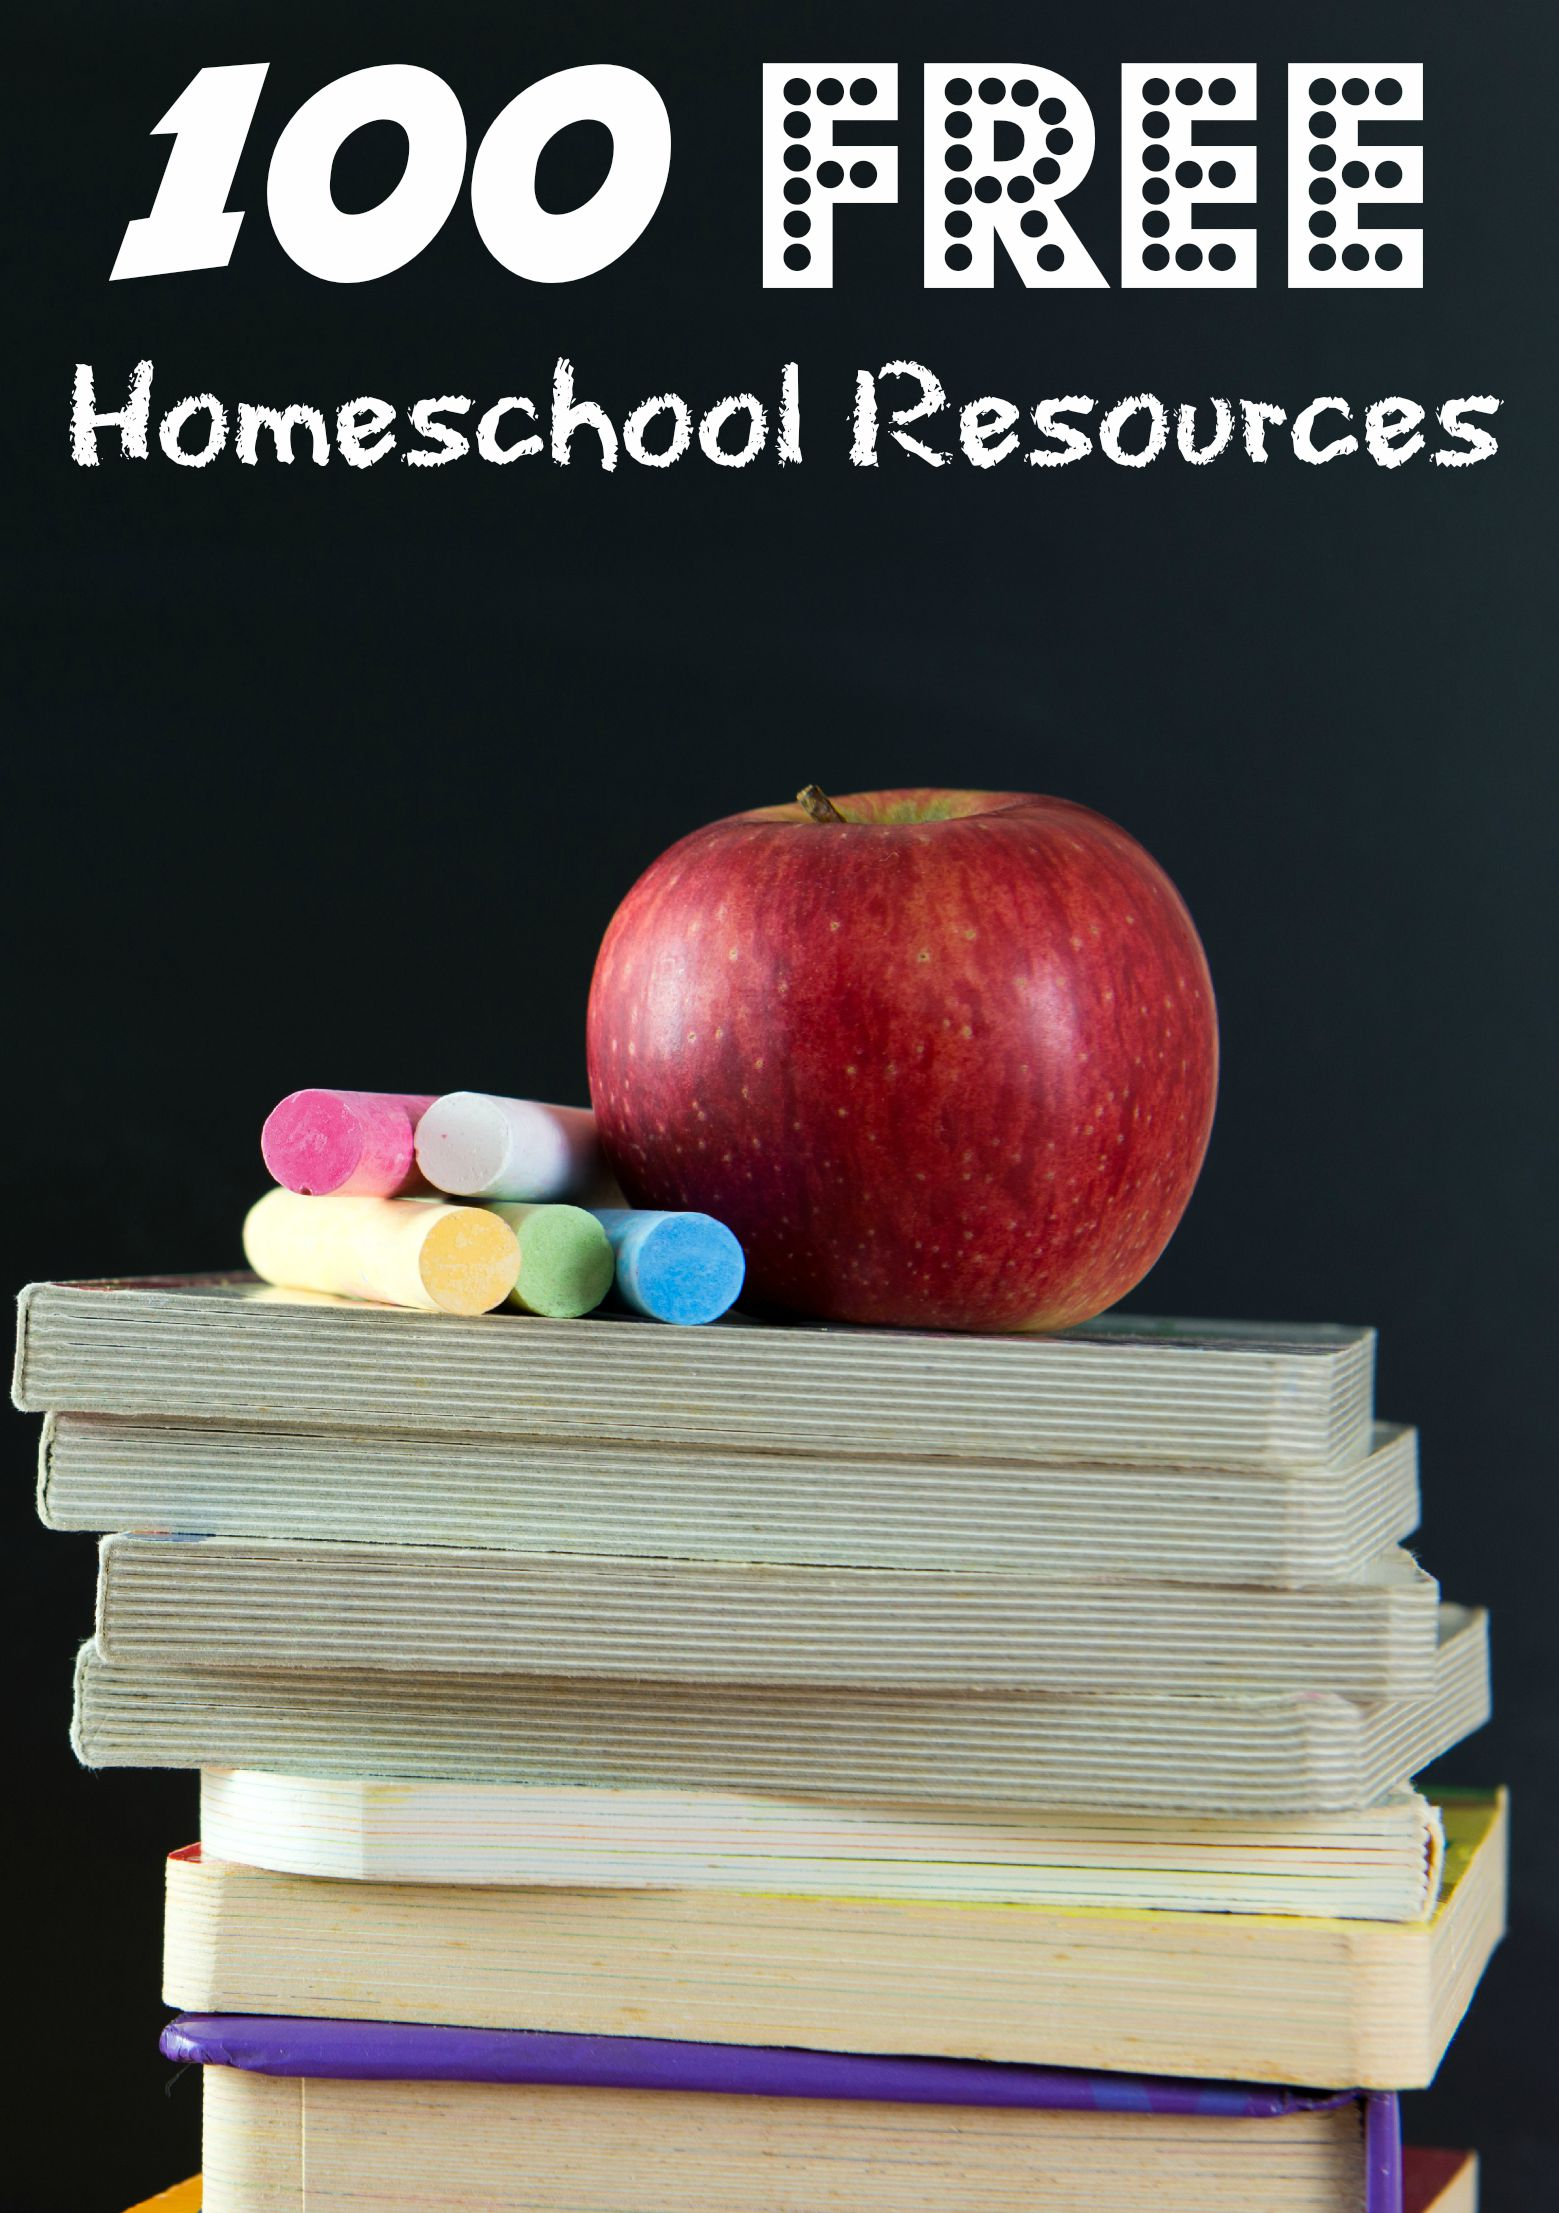 100 Free Homeschool Resources